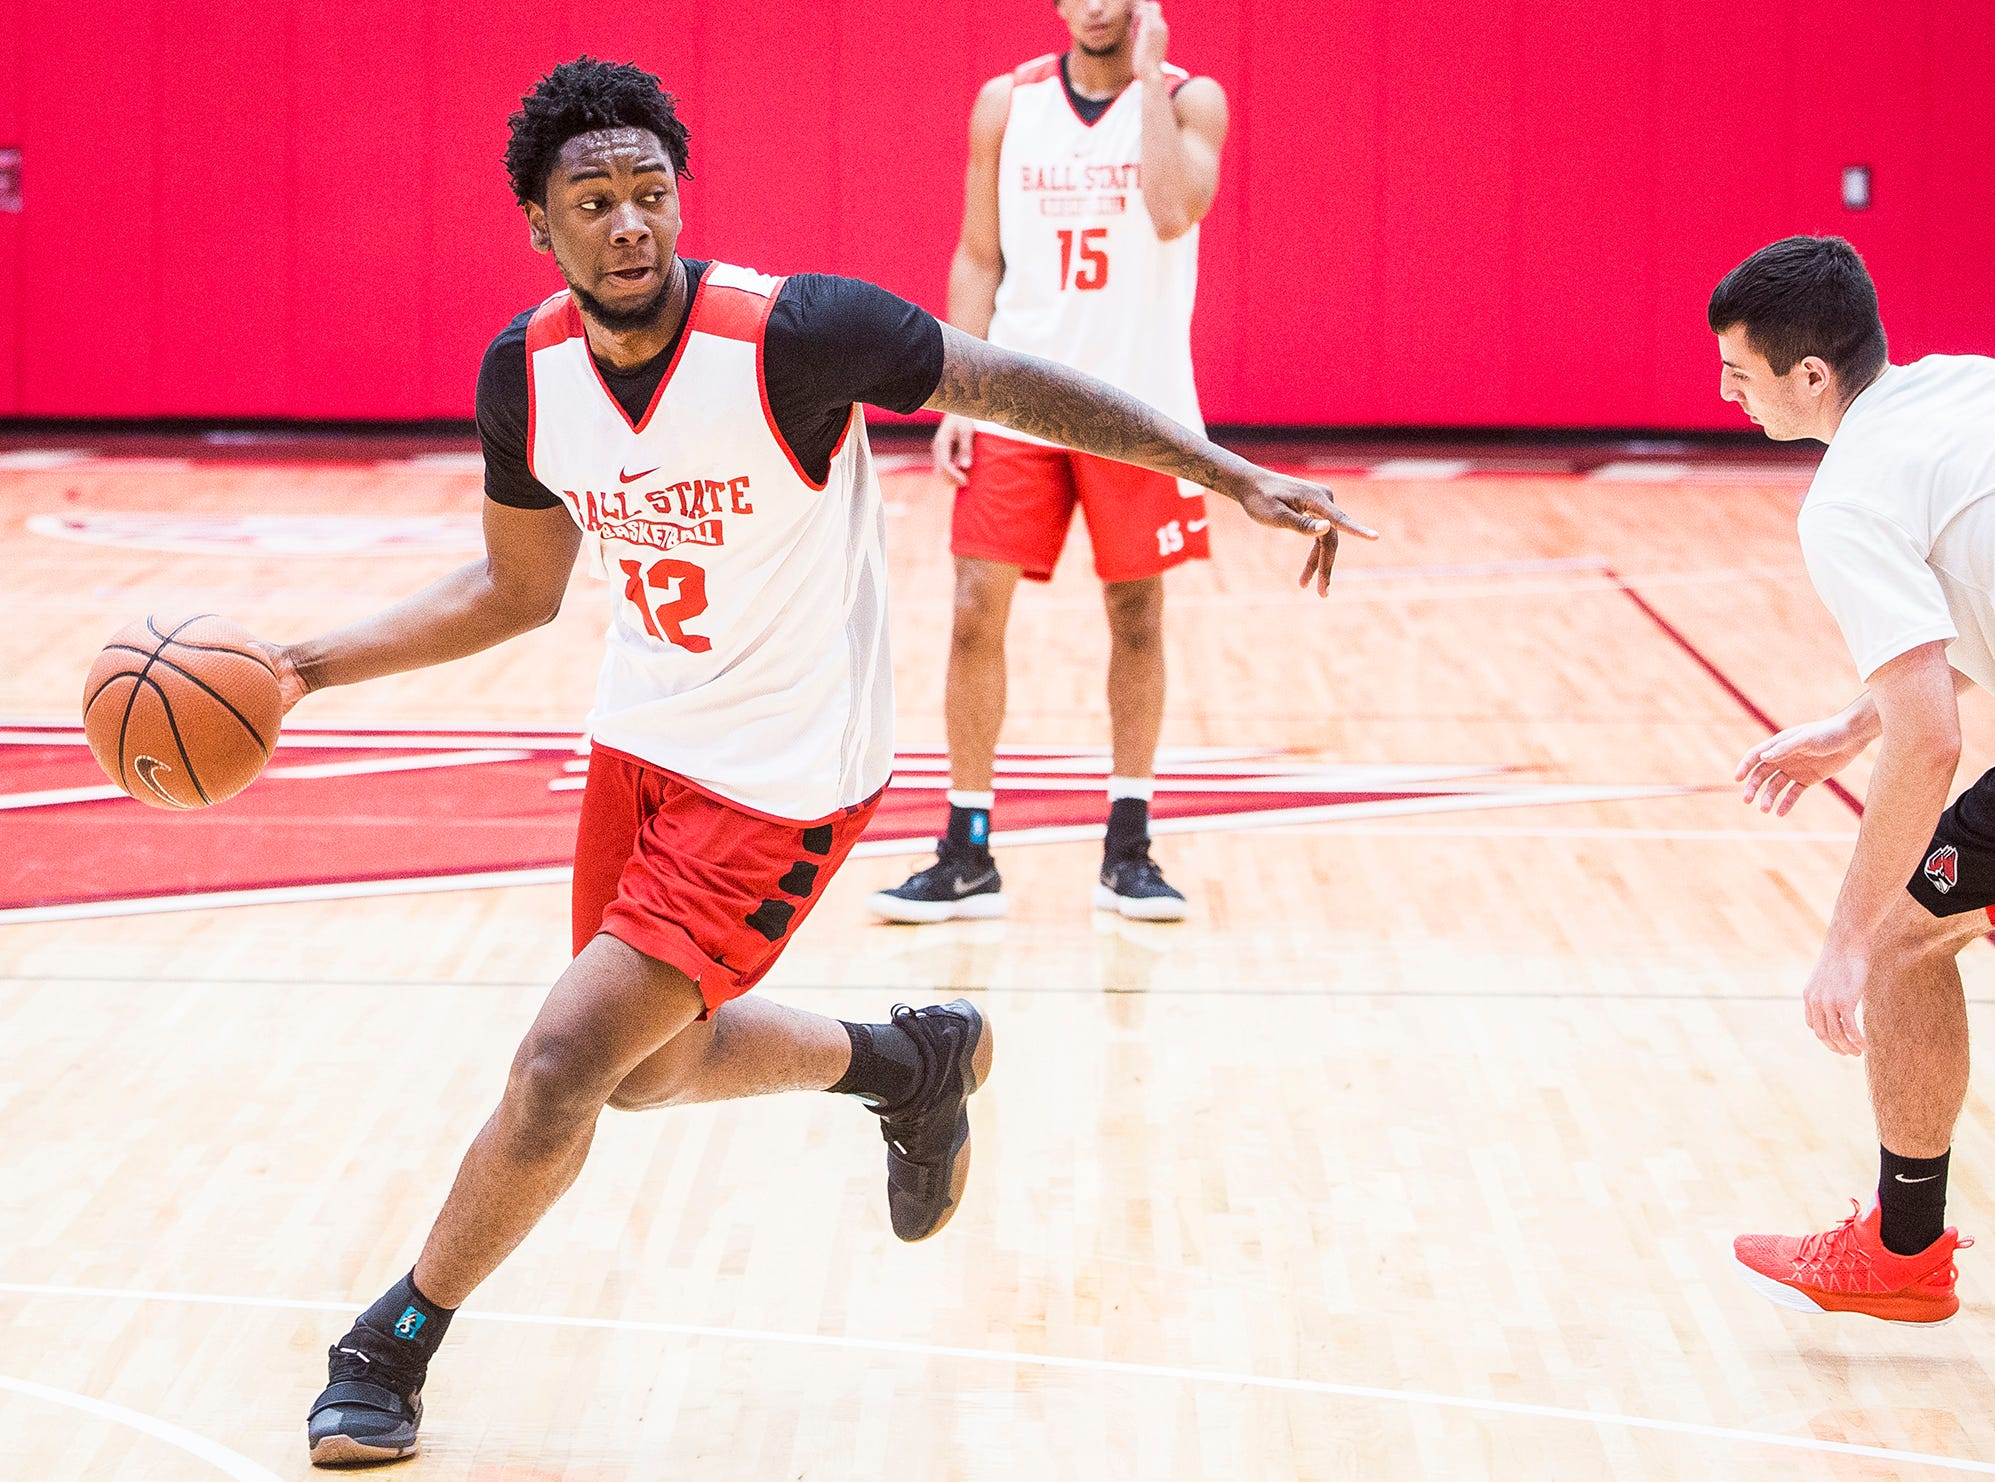 Ball State's Kani Acree works on defense with teammates during their first open practice Tuesday, Sept. 25, 2018.